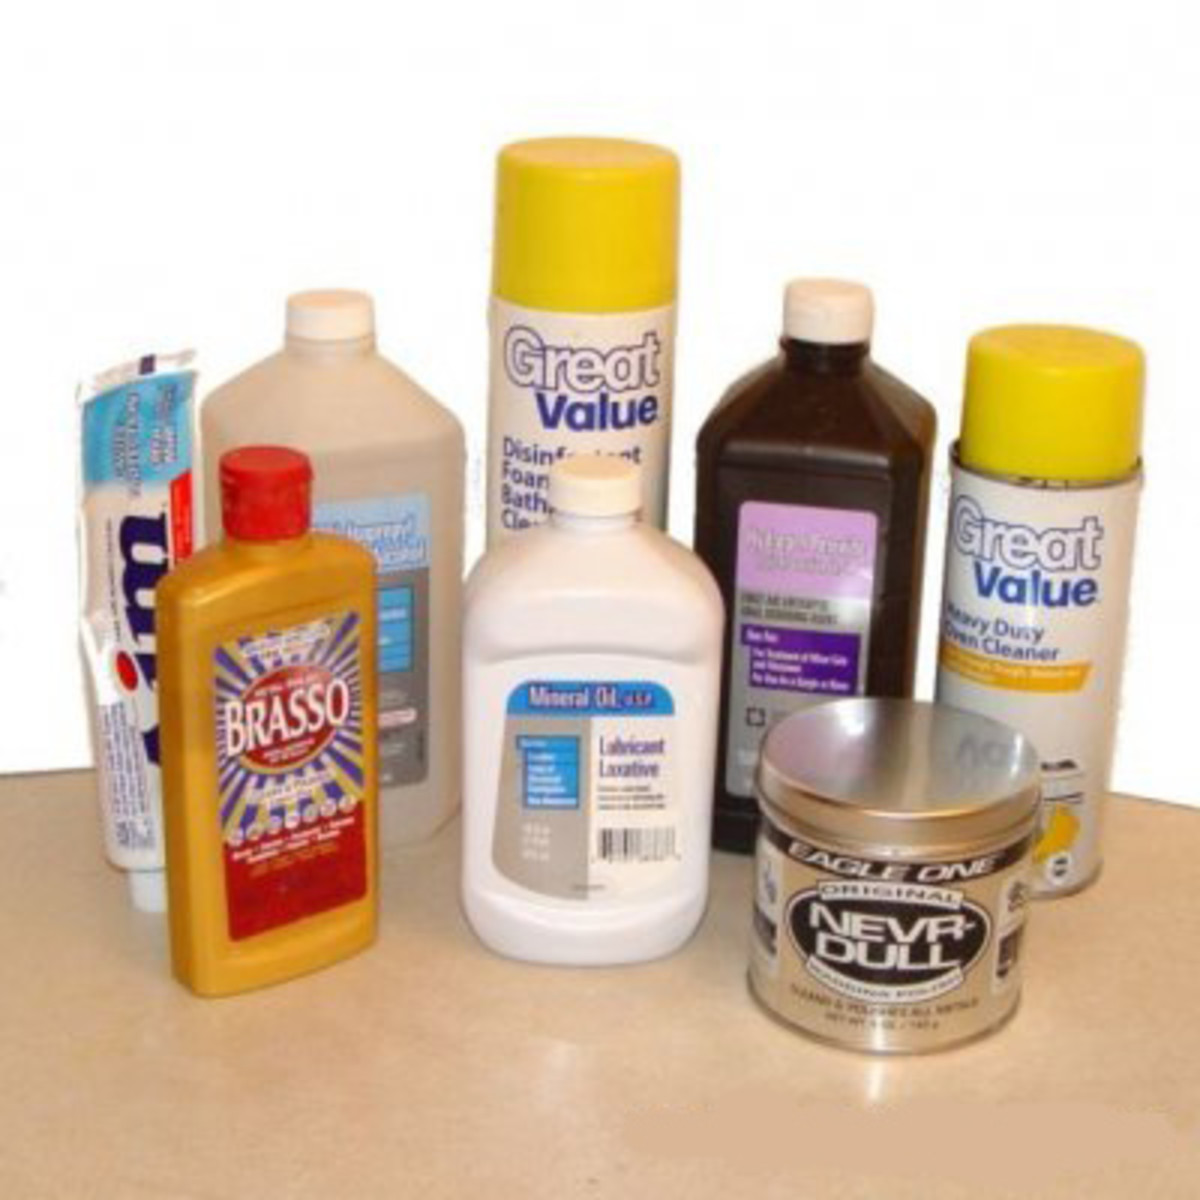 Cleaning materials for safety razors